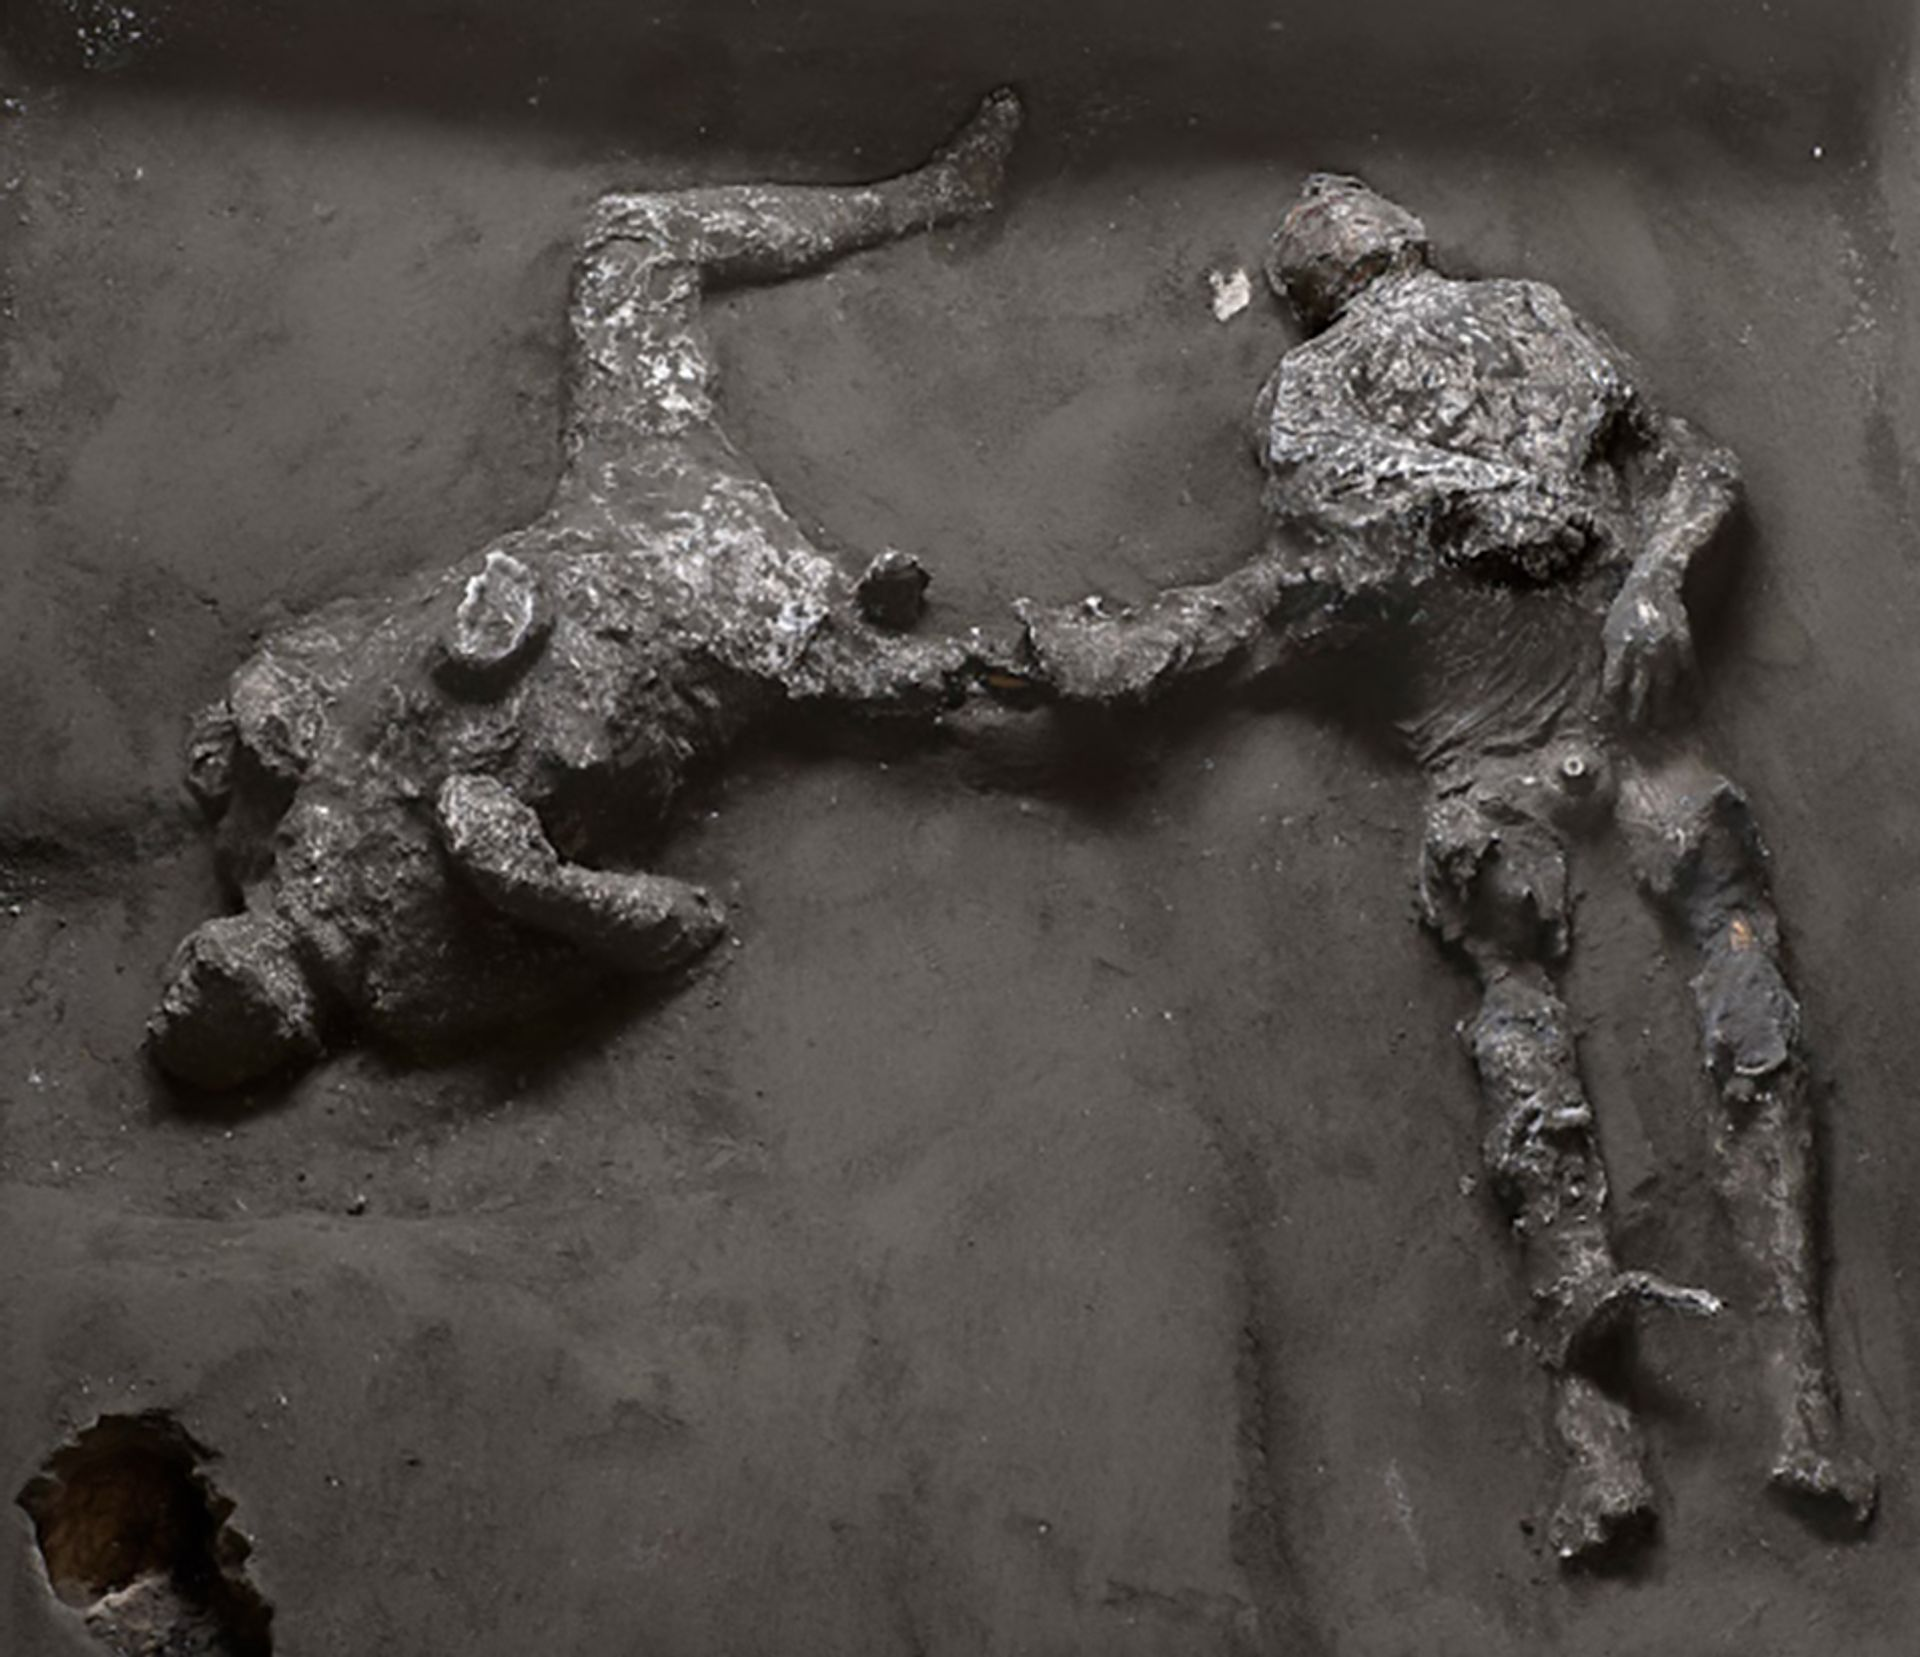 The men—who were were discovered during excavations at the Civita Giuliana, a suburban villa northwest of Pompeii—were identified as a wealthy landowner and his slave Courtesy of the Archaeological Park of Pompeii. Photo: Luigi Spina